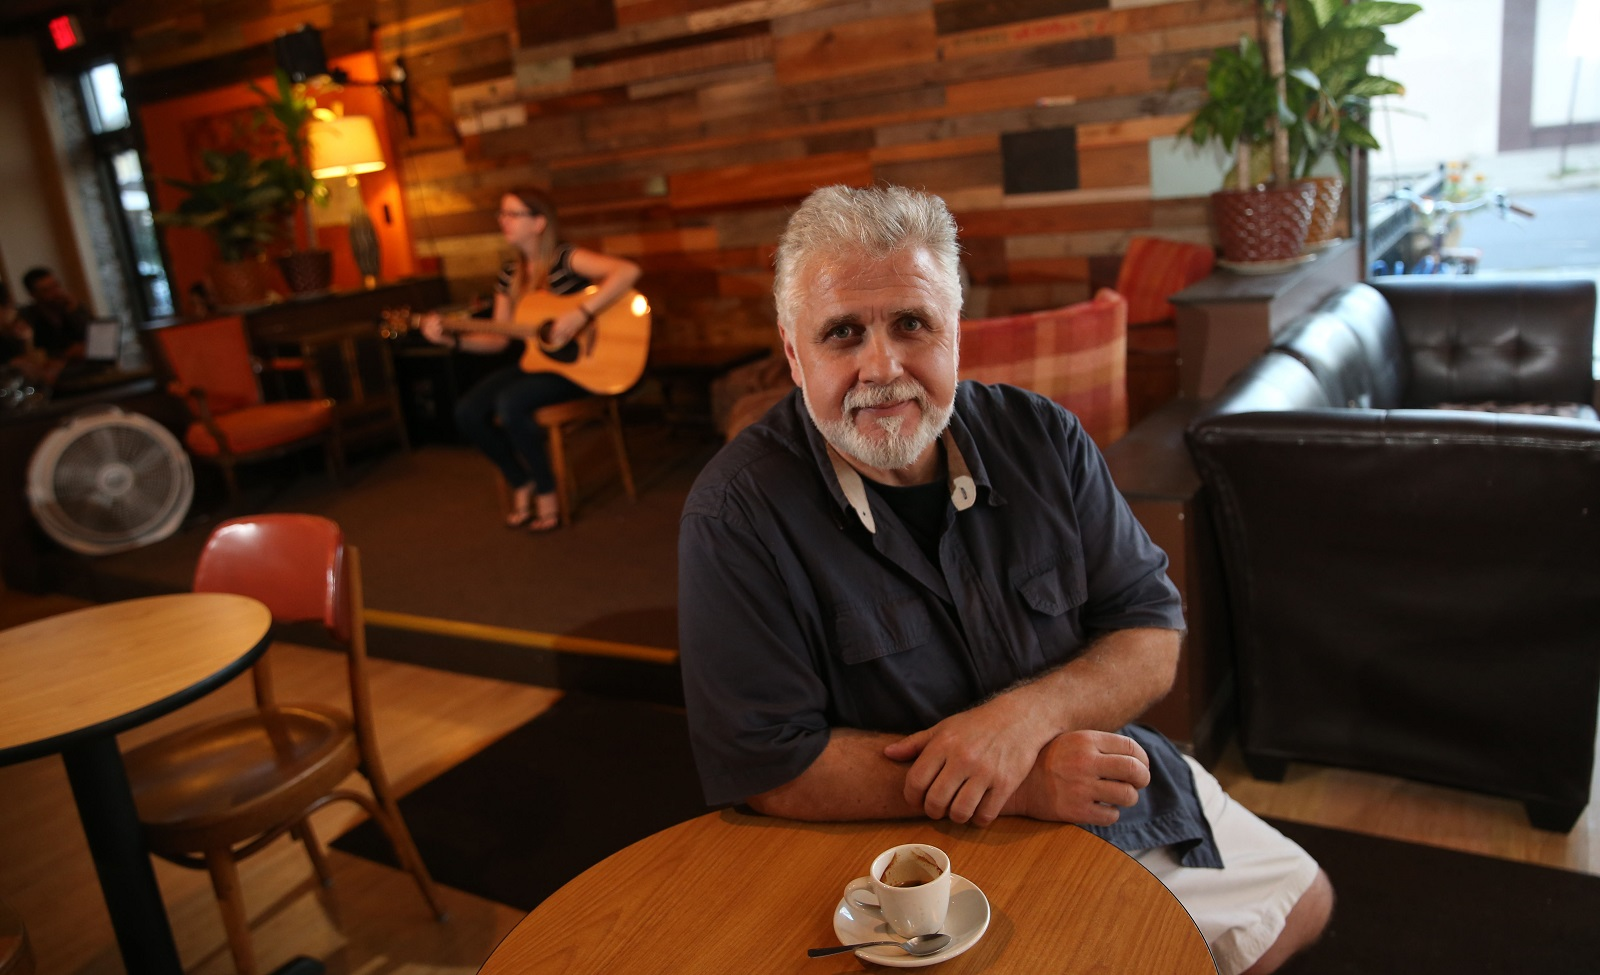 Daily Planet Coffee owner Mike Caputi has a passion for music he brings into his Hertel Avenue coffee shop. (Sharon Cantillon/Buffalo News)